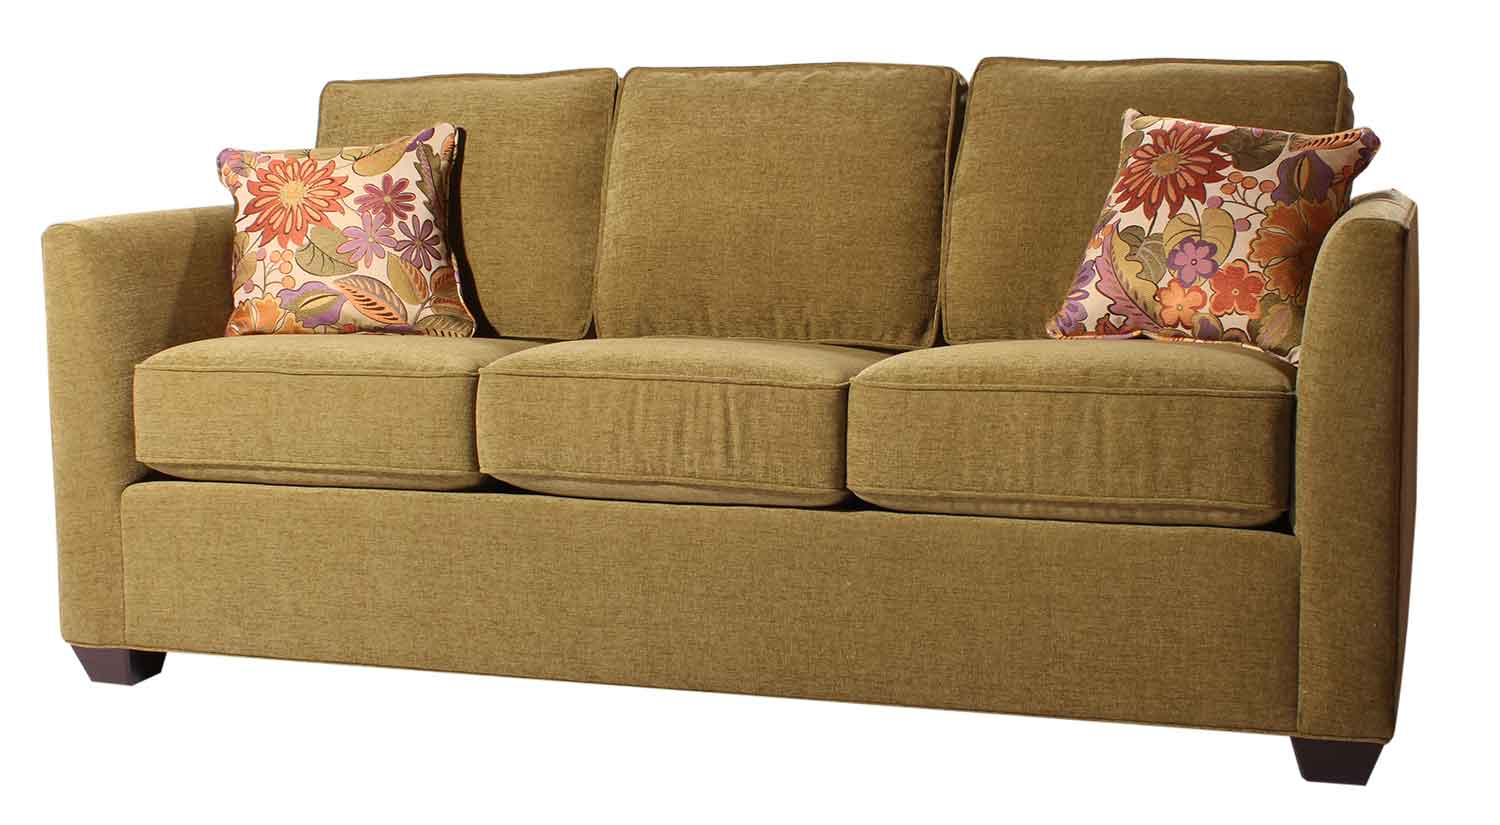 Circle Furniture Heather Sofa Sofas Cambridge Circle Furniture